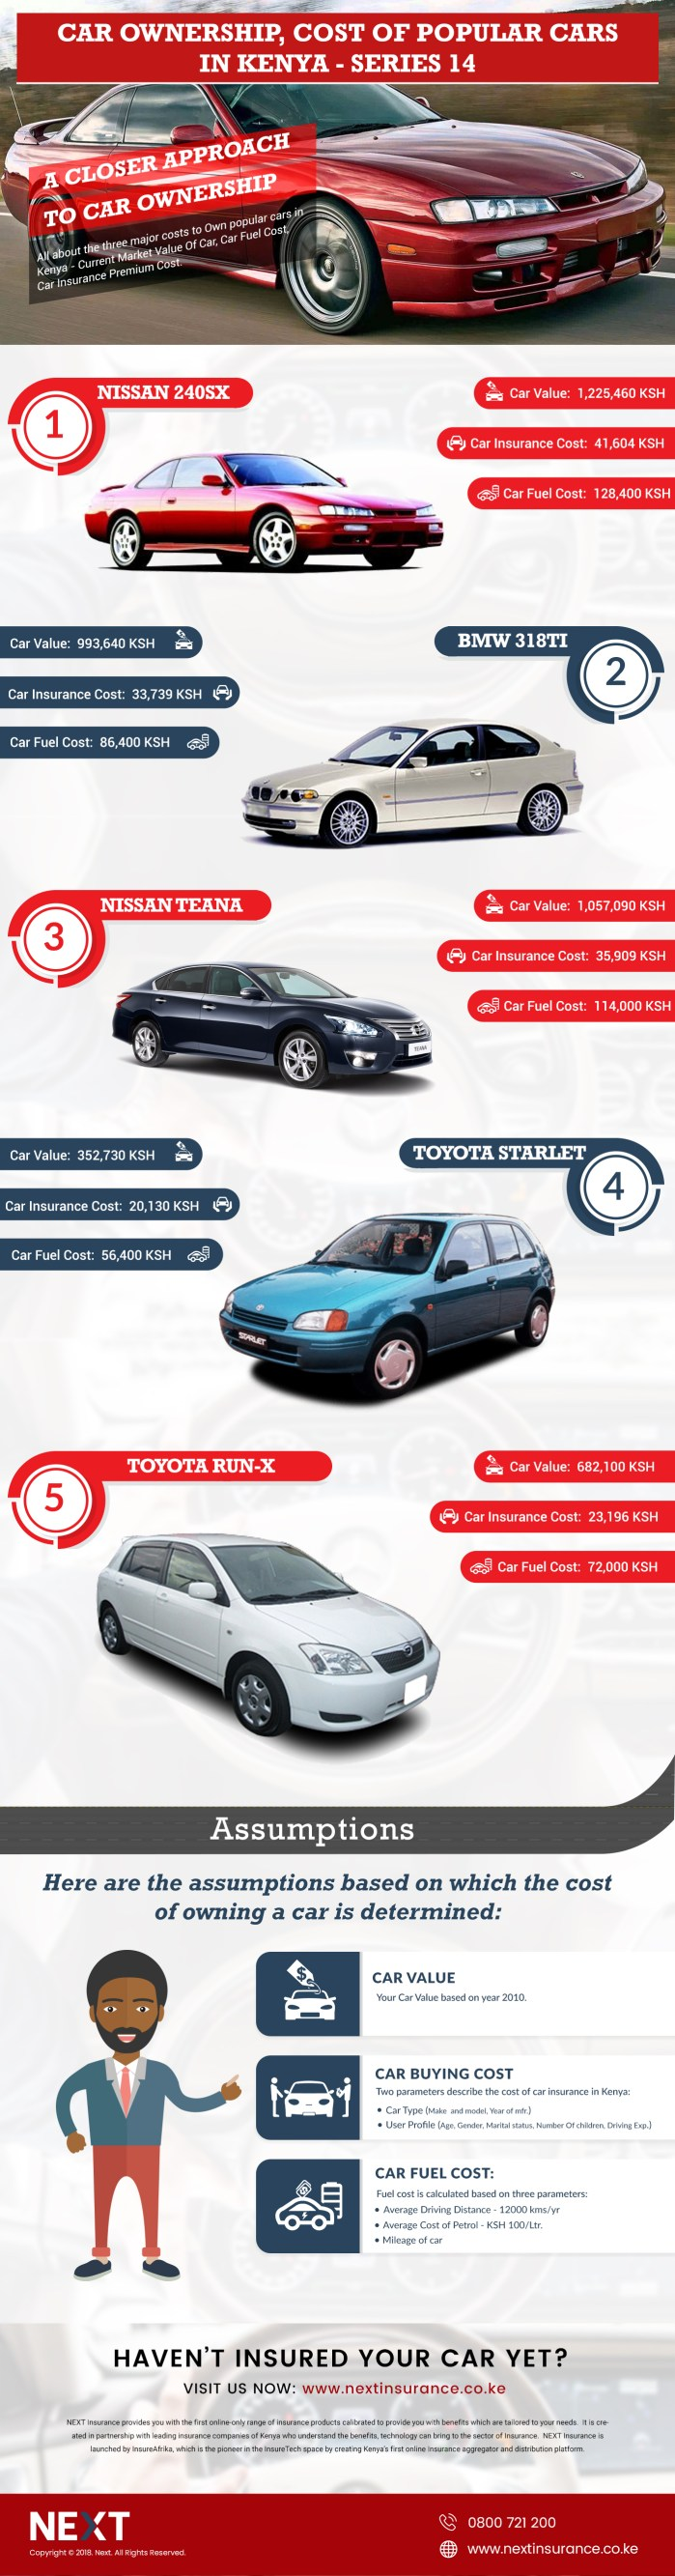 Car Ownership Cost, Top 5 Cars in Kenya Infographic – Series 14